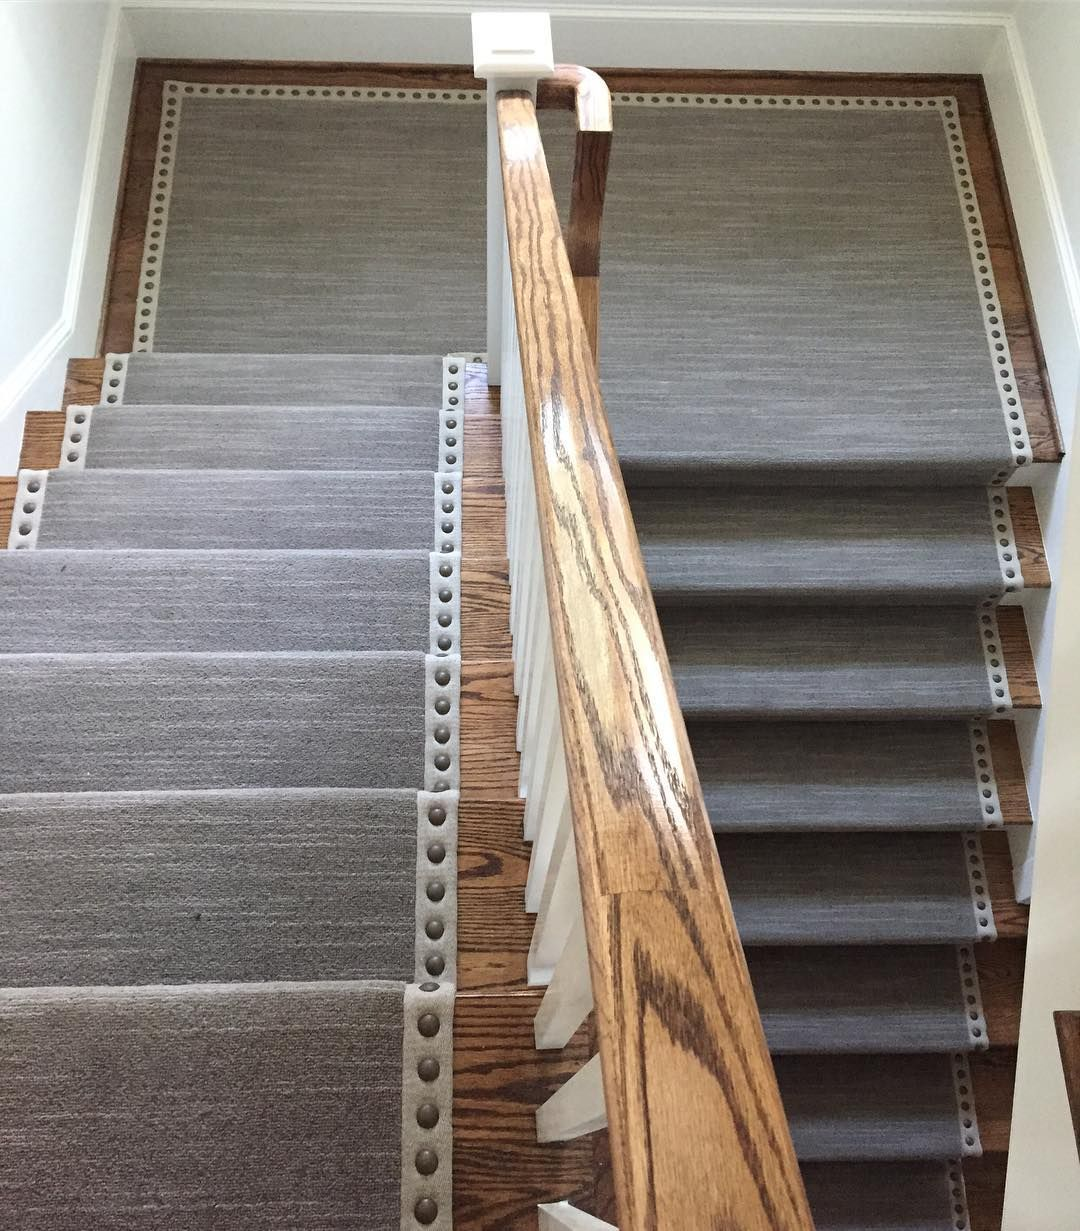 Mnailheads Add An Elegance To This Stair Runner And Edge Regram Via Jabelinteriors Staircase Runner Stairway Carpet Stair Runner Carpet